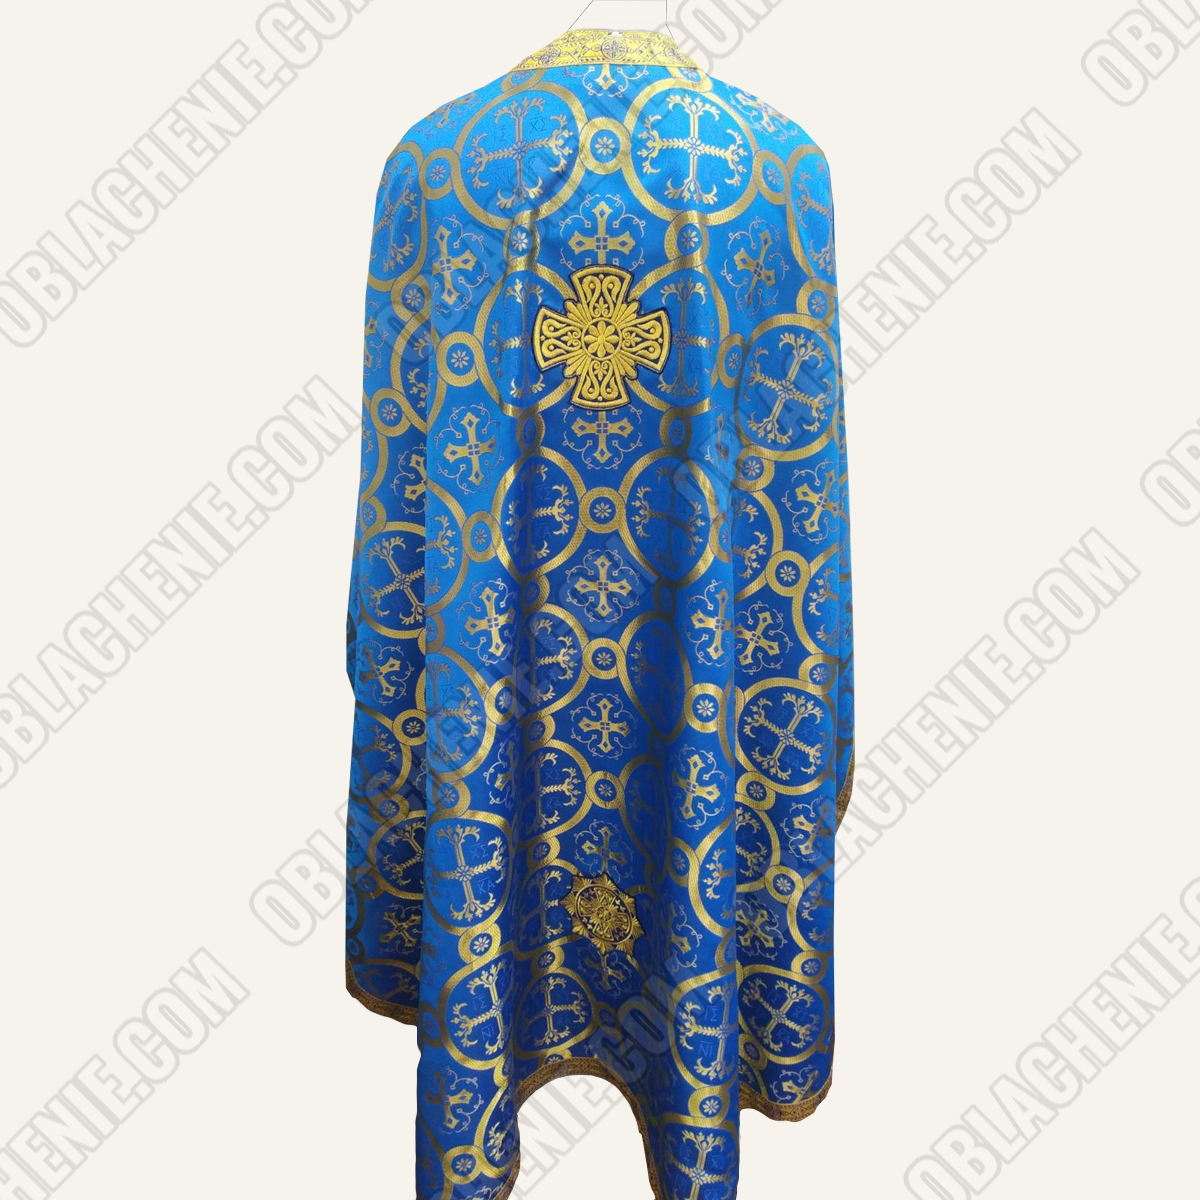 PRIEST'S VESTMENTS 11043